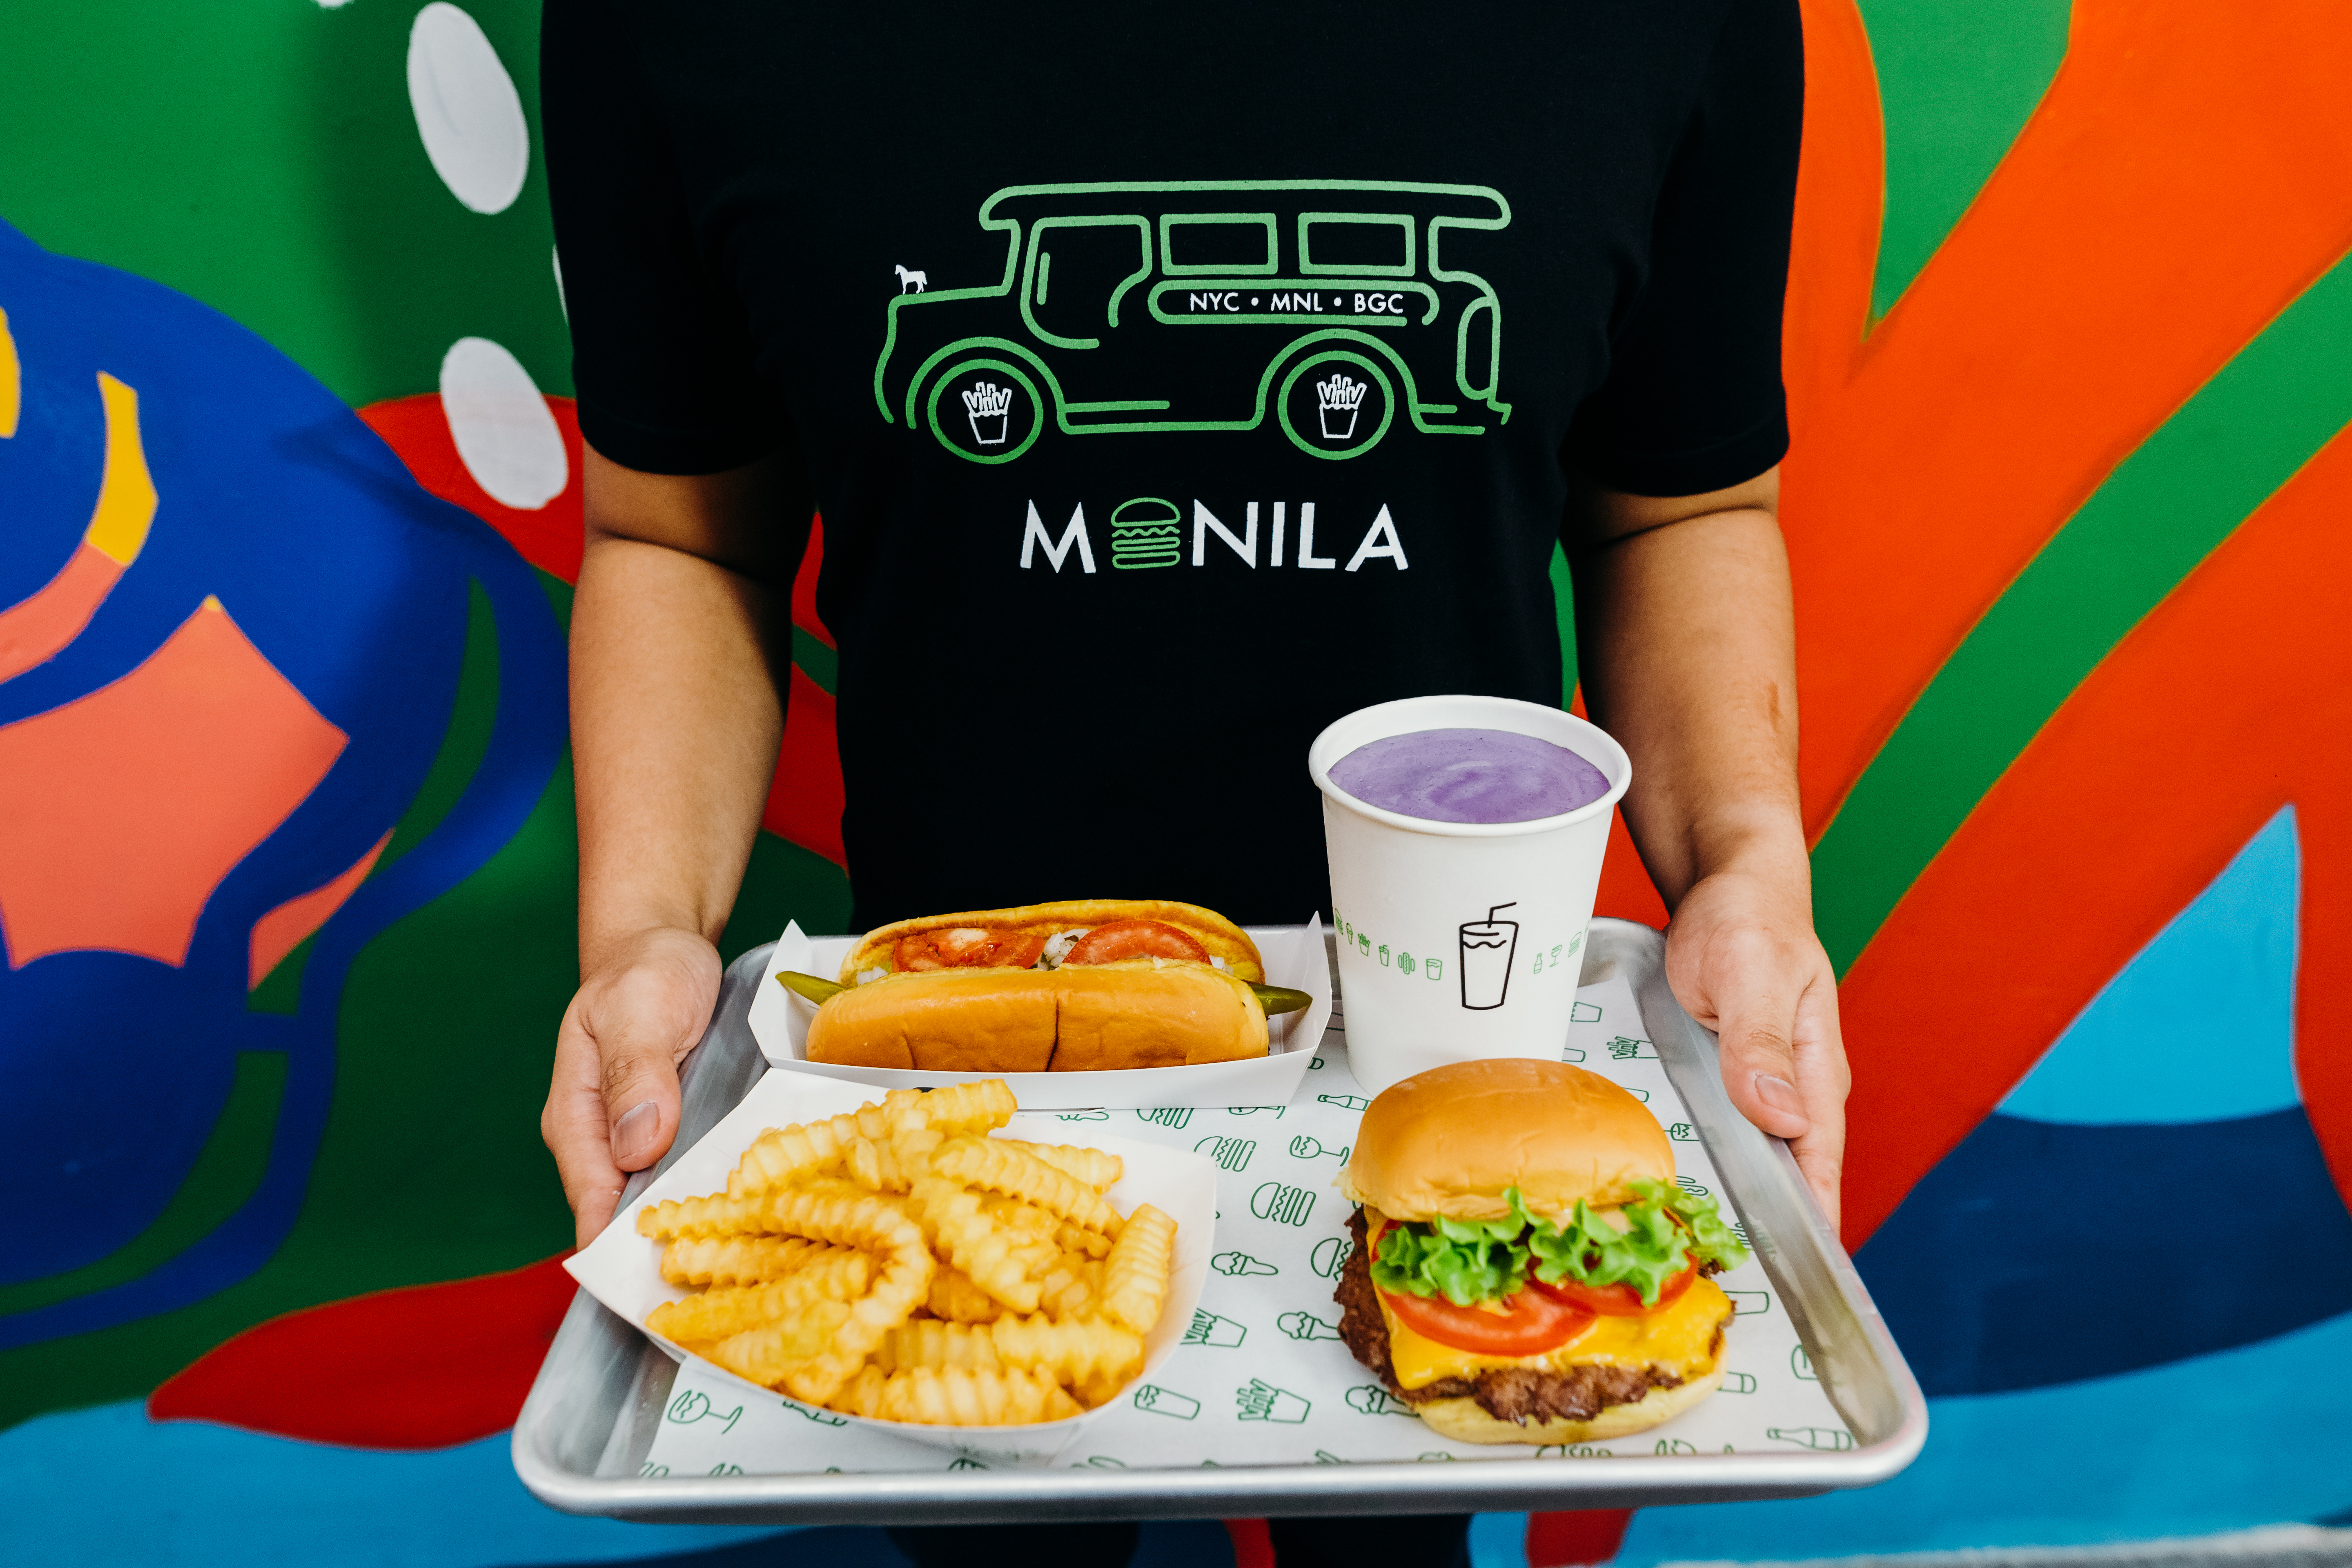 The Shack Burger with fries and an ube milkshake at the new Shack Shack in Manila.